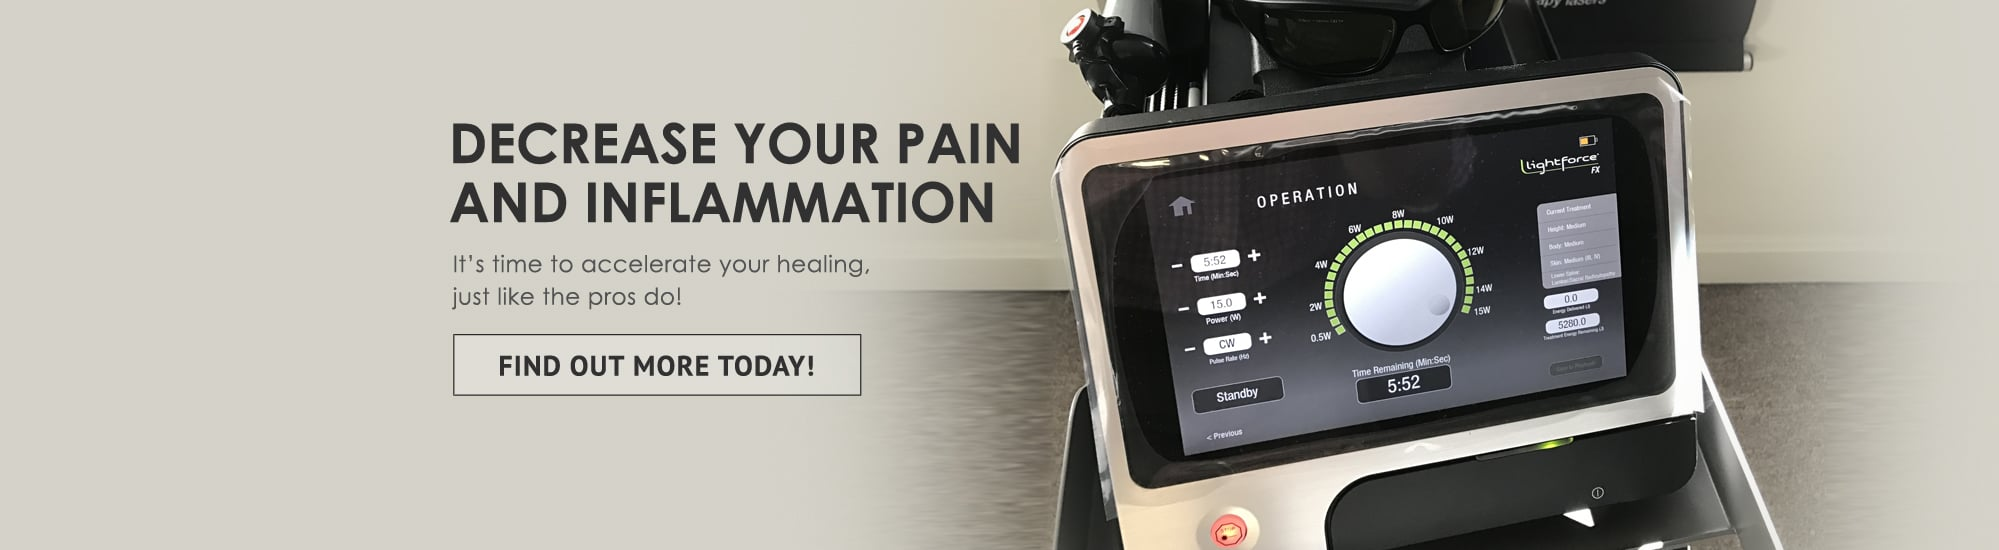 stop inflammation and pain today